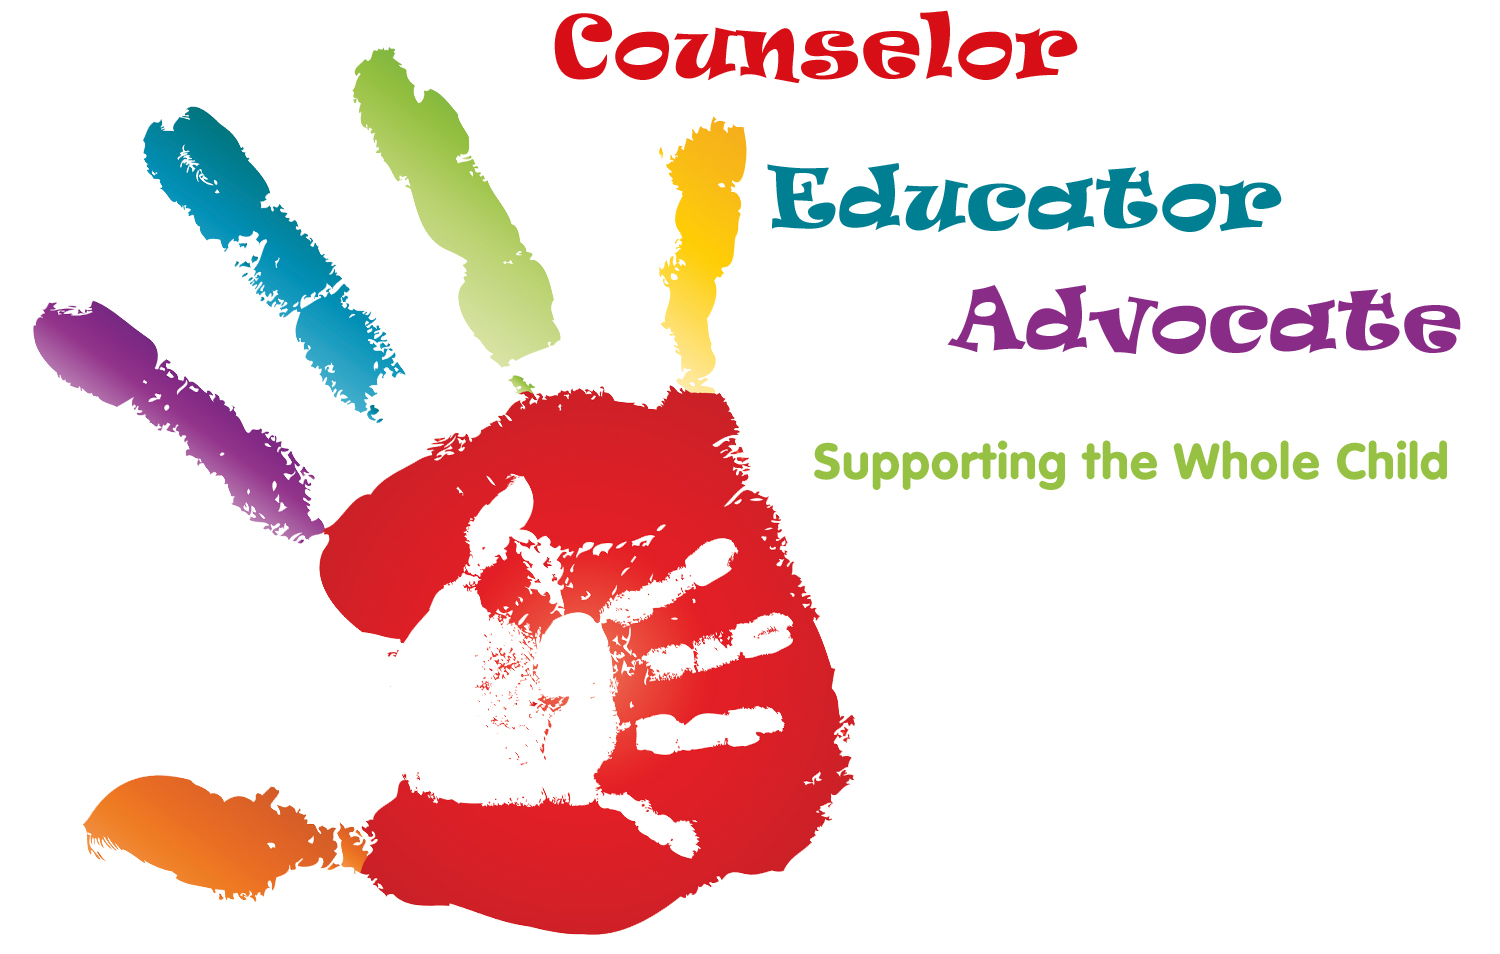 counselor educator advocate